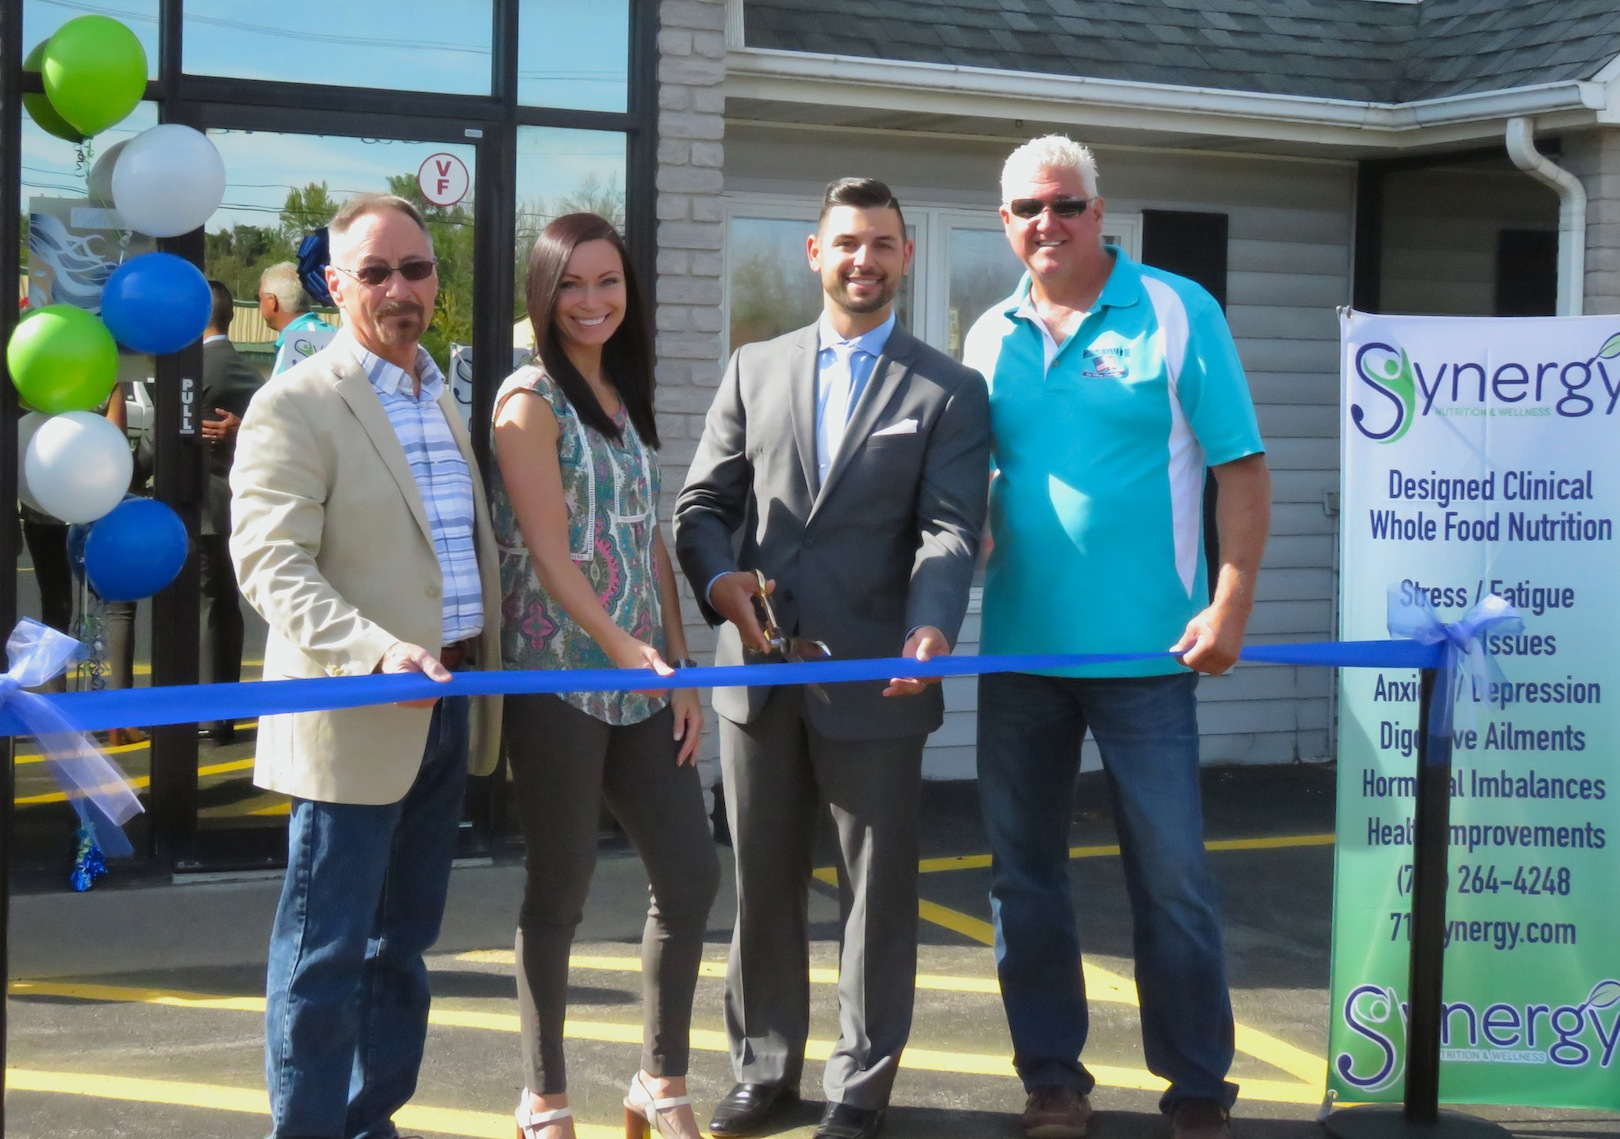 From left, Town of Wheatfield Supervisor Don MacSwan; owner of Be Moved Fitness Tara Scaringi; owner of Synergy Nutrition & Wellness Jimmy Scaringi; and partner Paul Wendt cut the ribbon to their new facility at 3376 Niagara Falls Blvd., Wheatfield. (Photos by David Yarger)